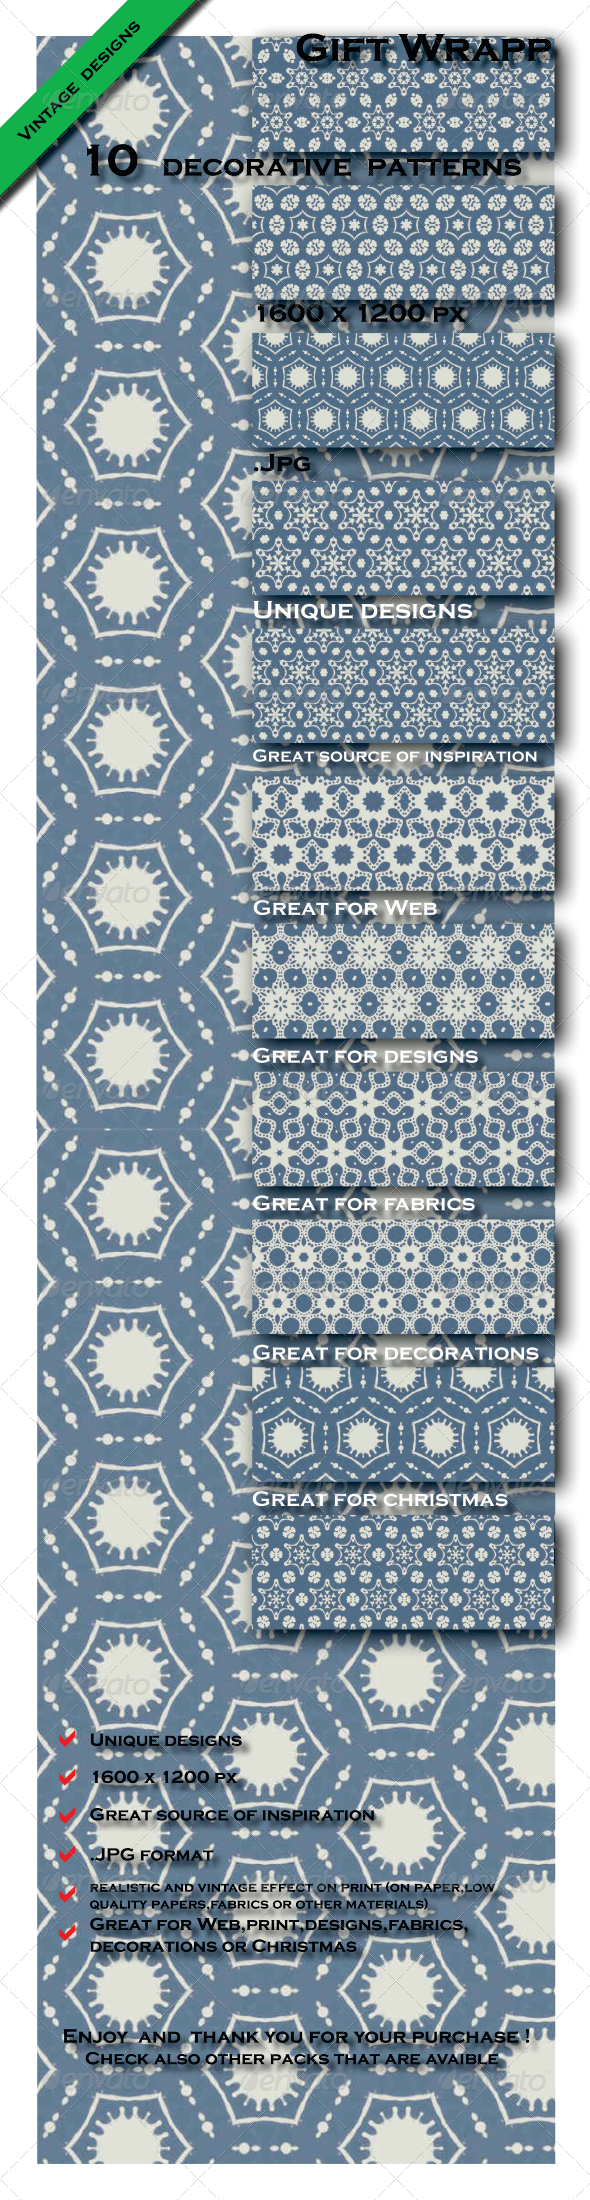 GraphicRiver 10 Gift Paper Models Patterns Pack 1 6603431